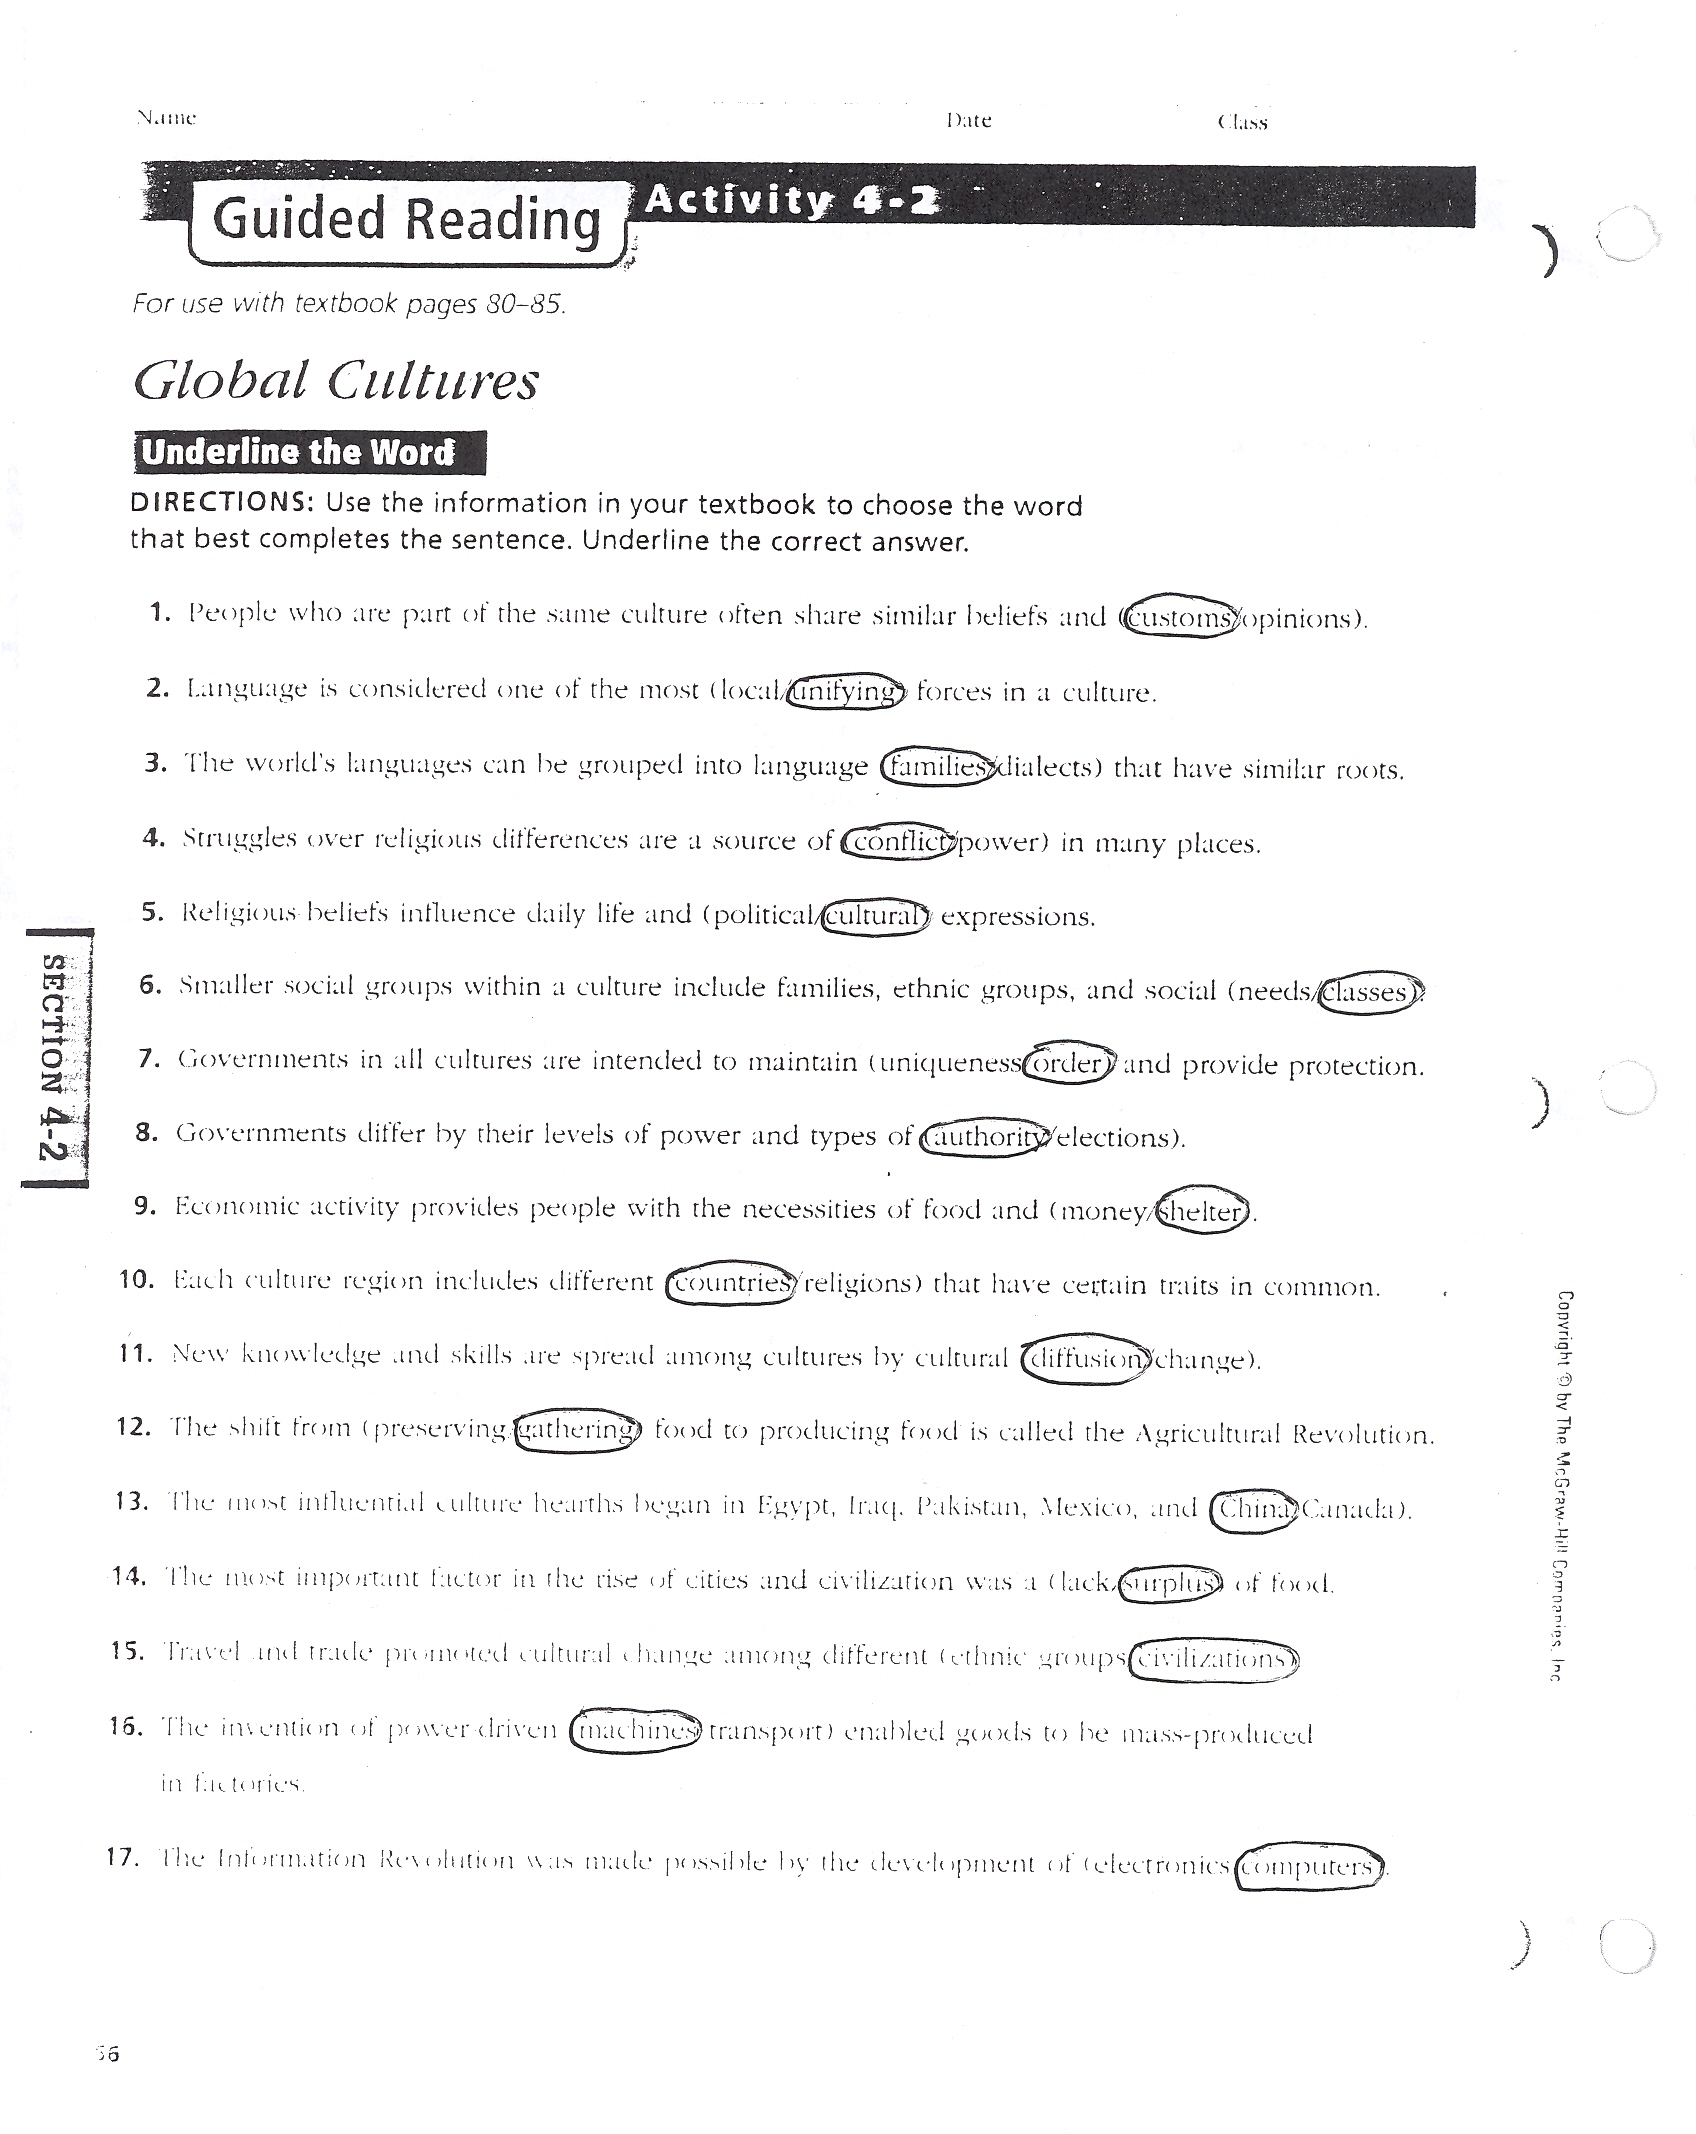 world history world geography rh acedwardslobos86 com Guided Reading Ideas Guided Reading Books